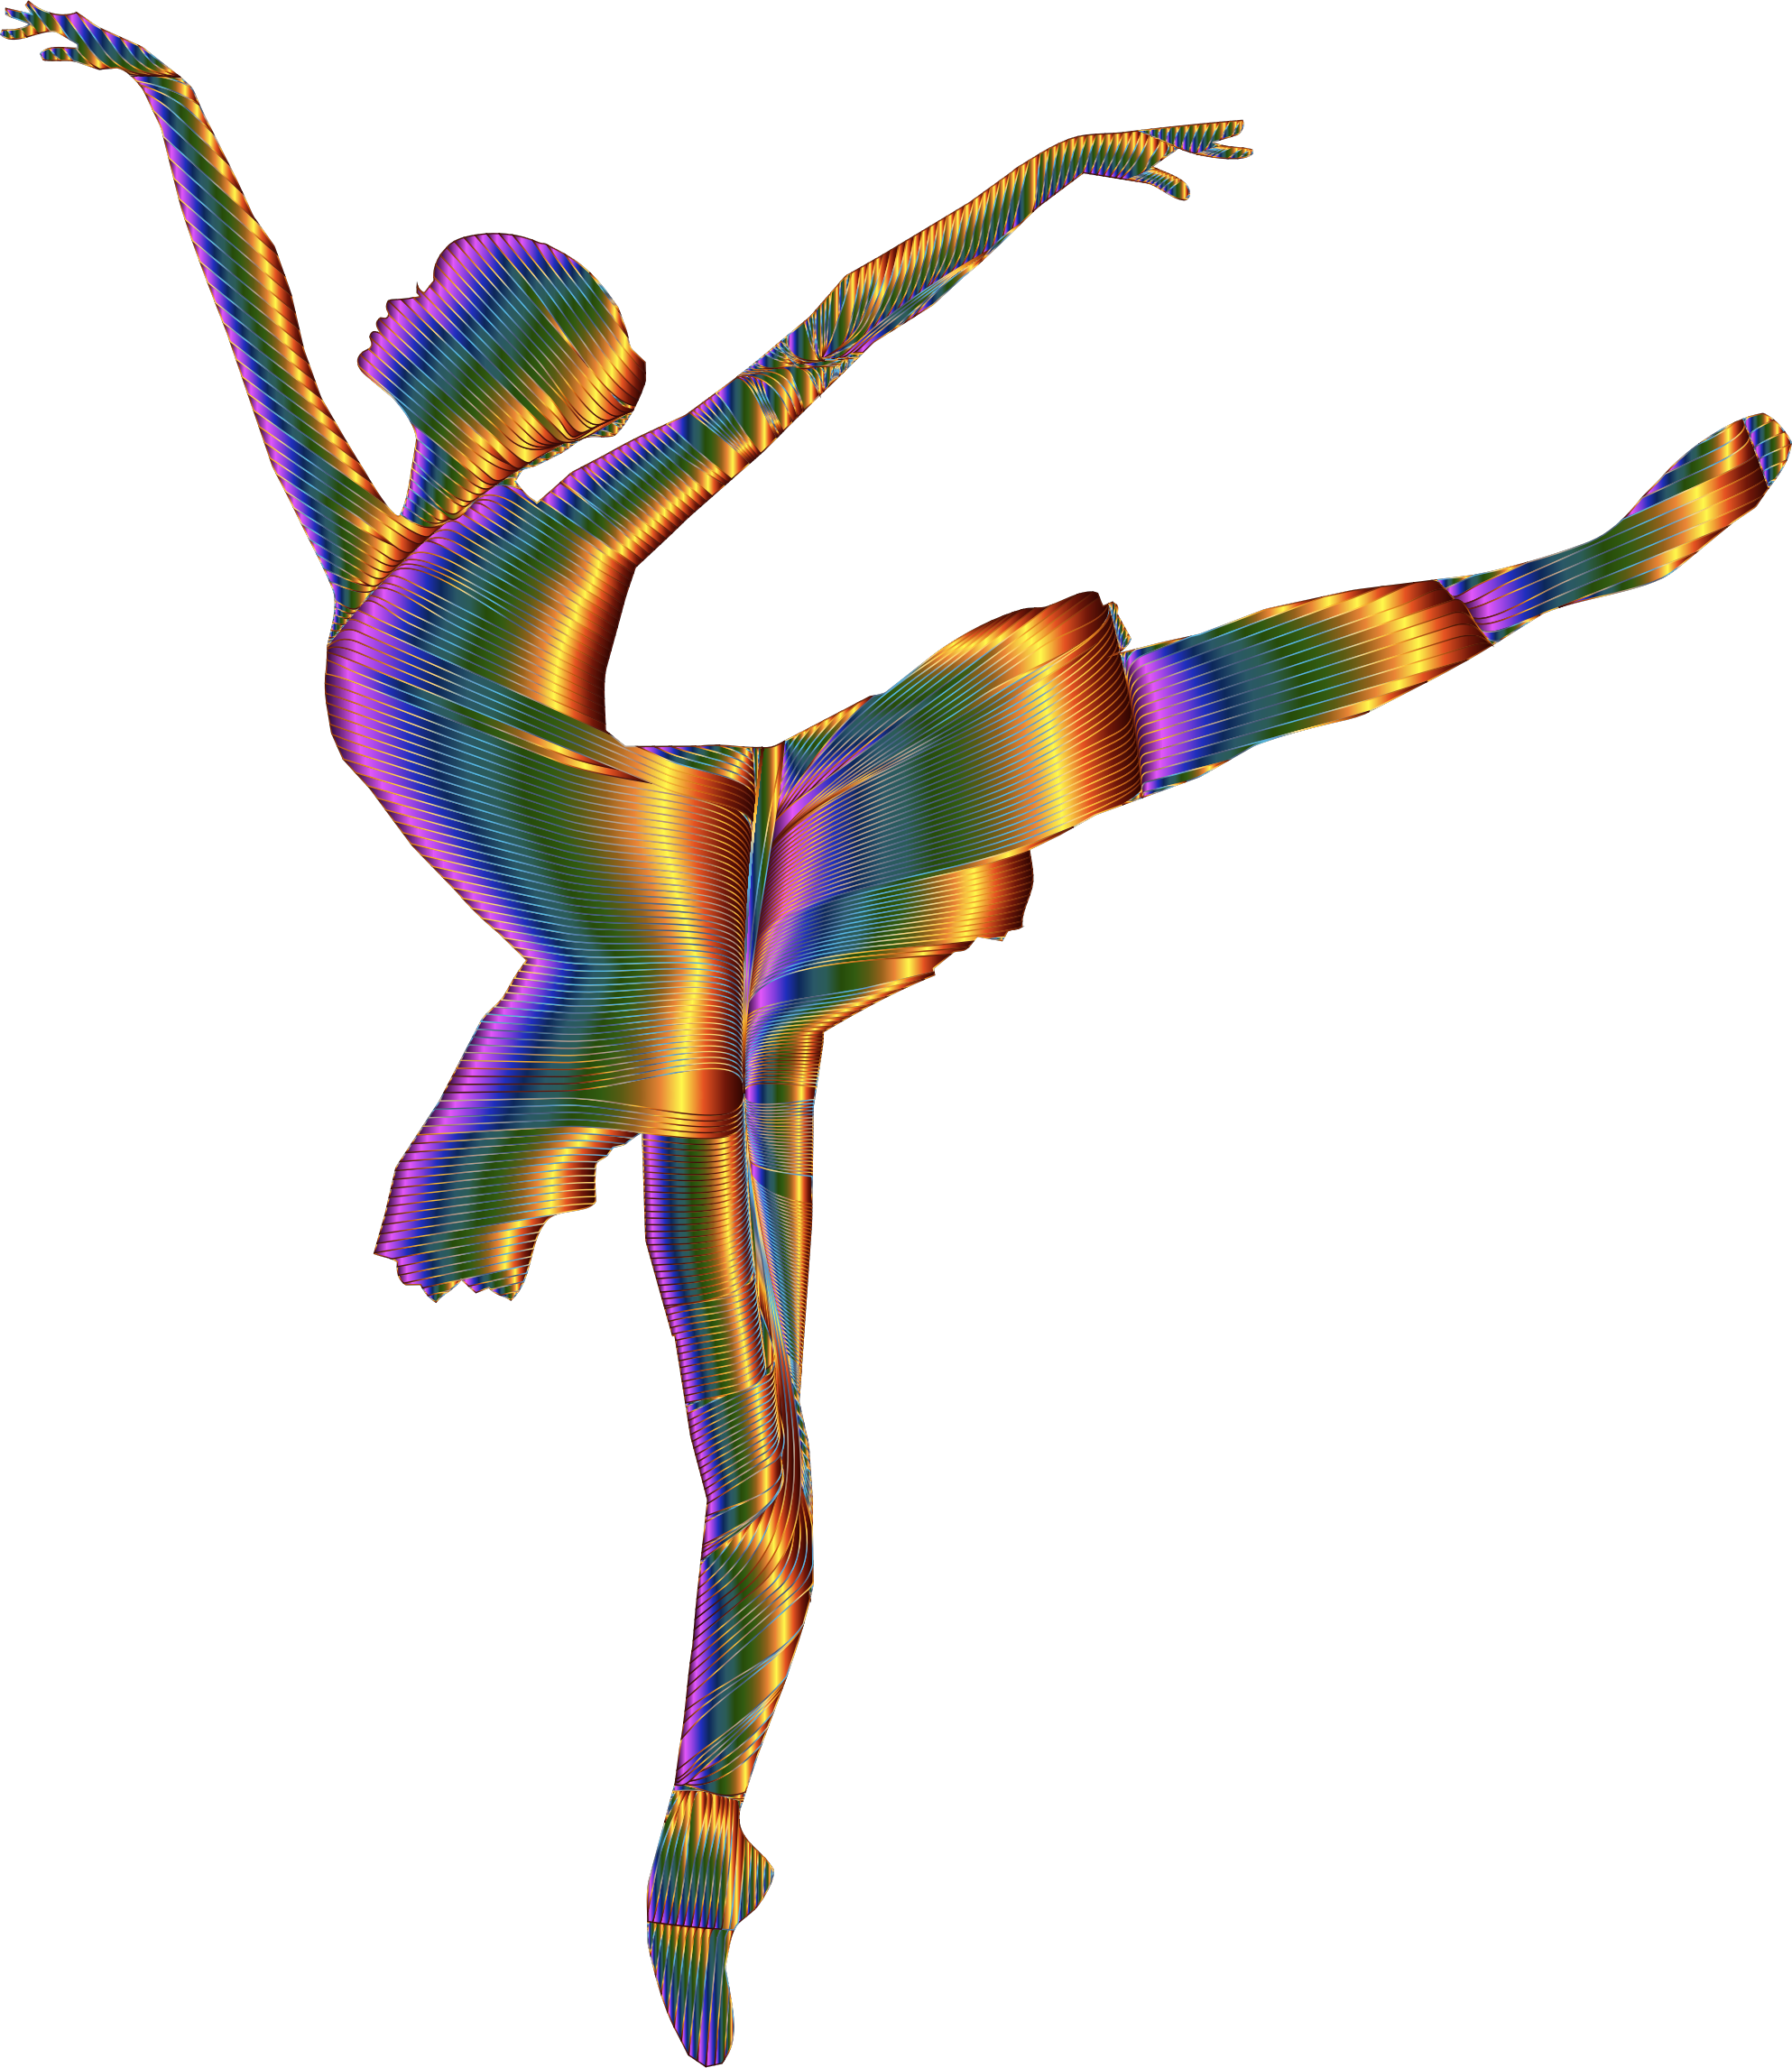 Chromatic Graceful Ballerina Silhouette No Background by GDJ